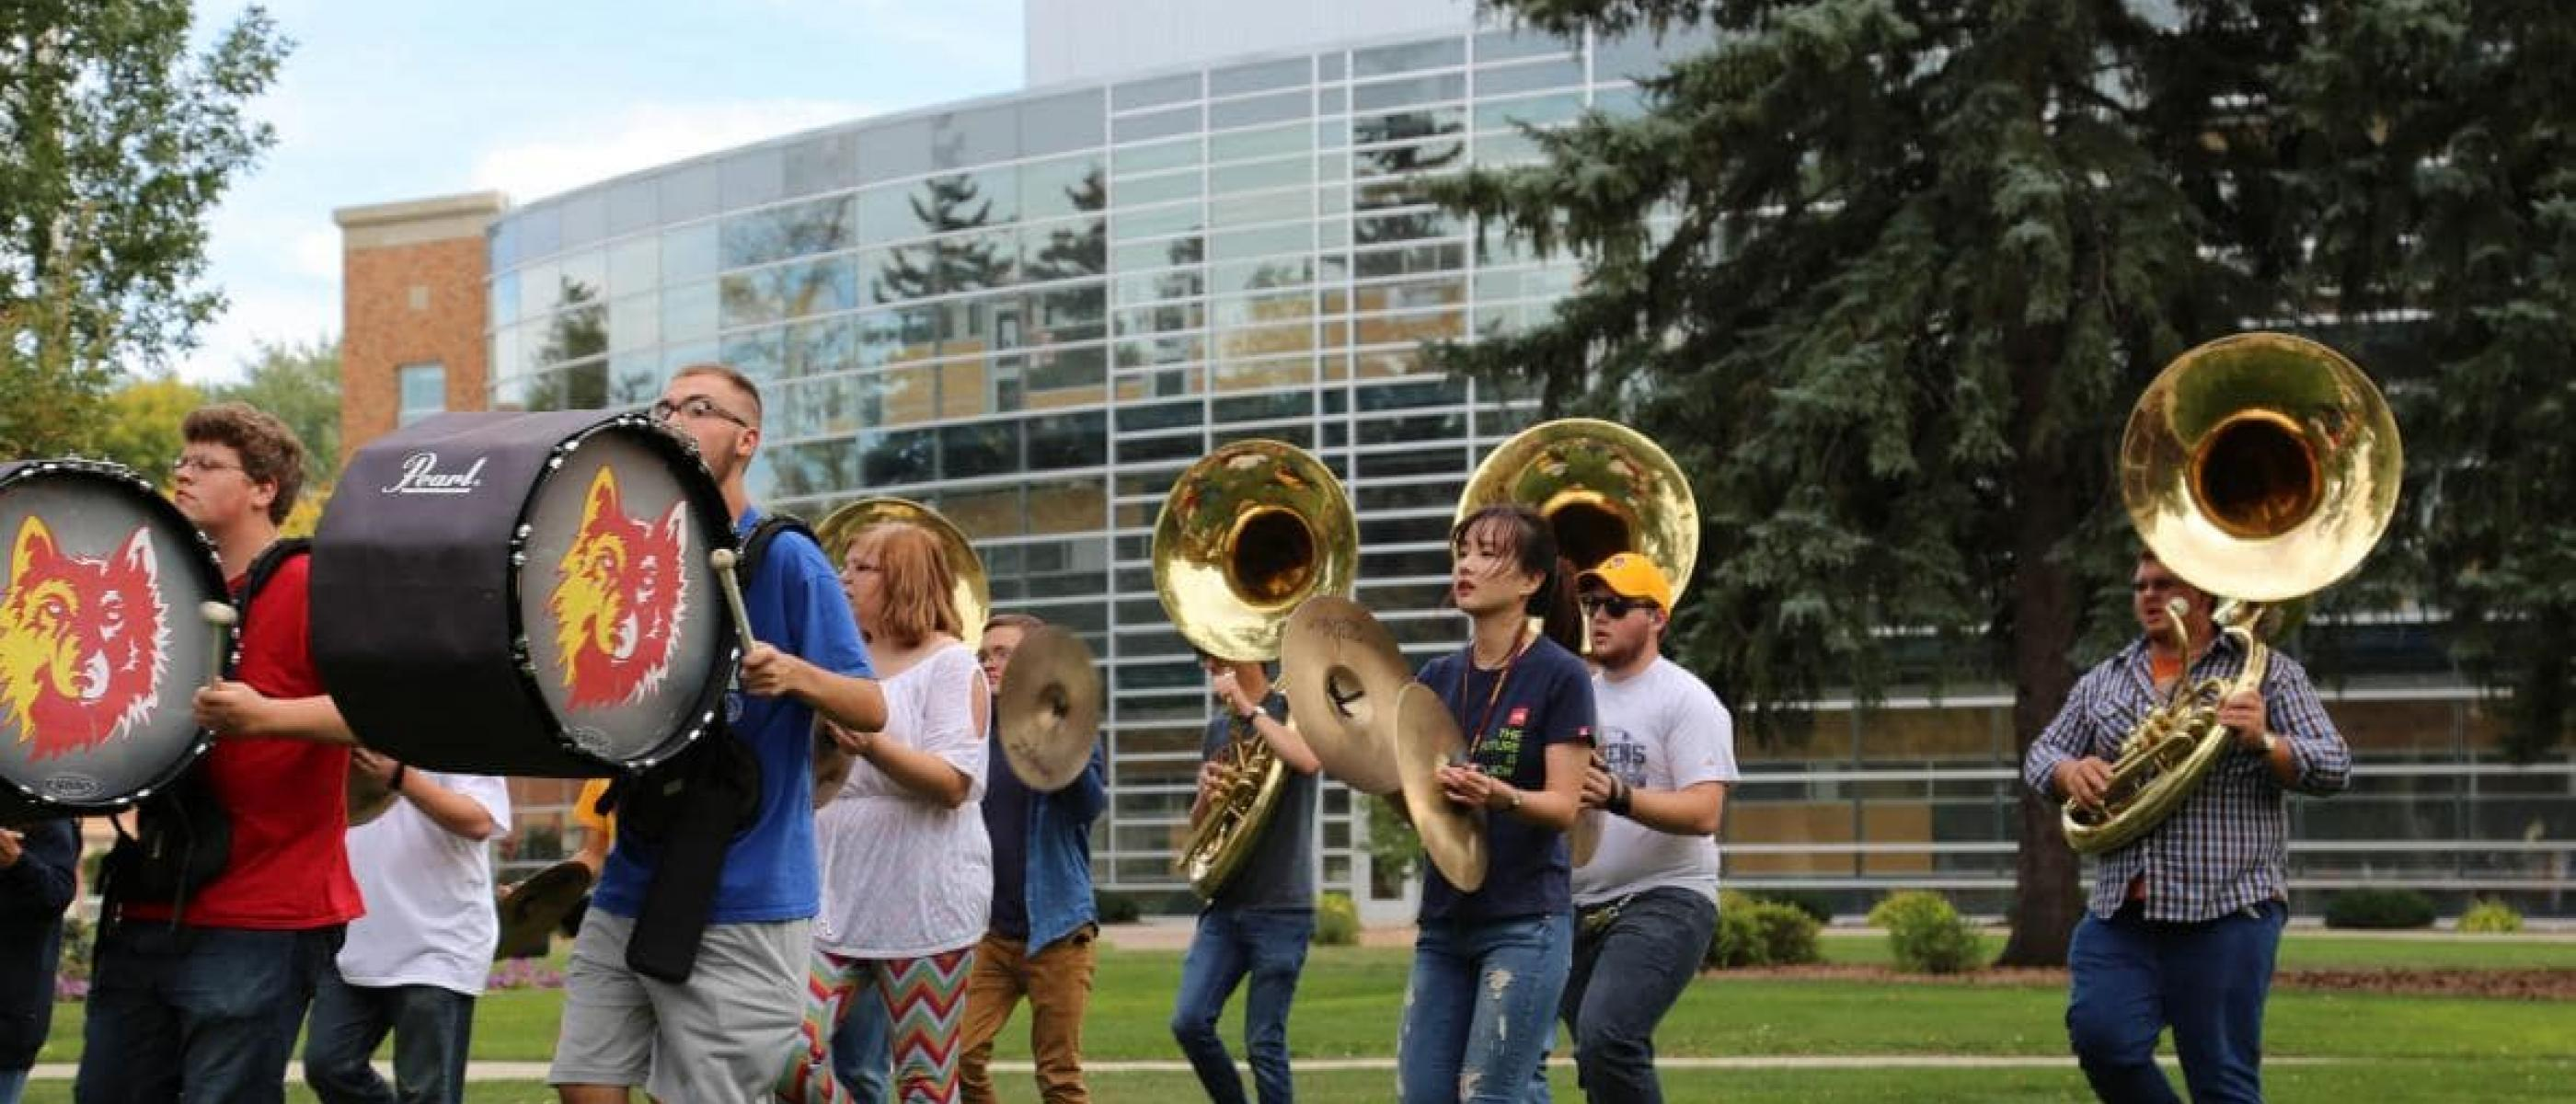 Members of the Marching Wolves practice on the campus green.